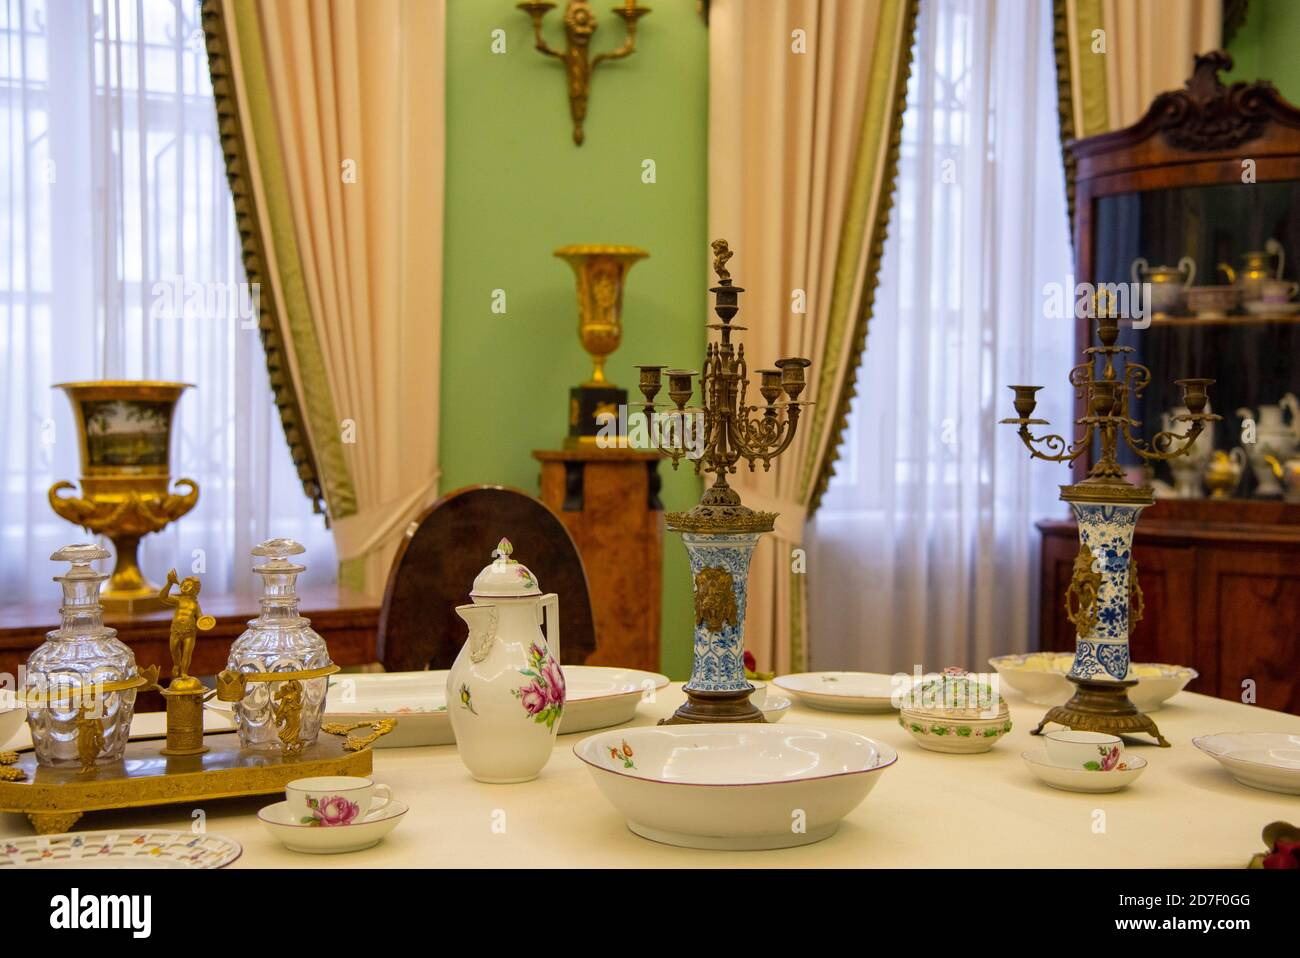 The Museum room in the old HOMESTEAD. Living room with a table set for the arrival of guests. Stock Photo